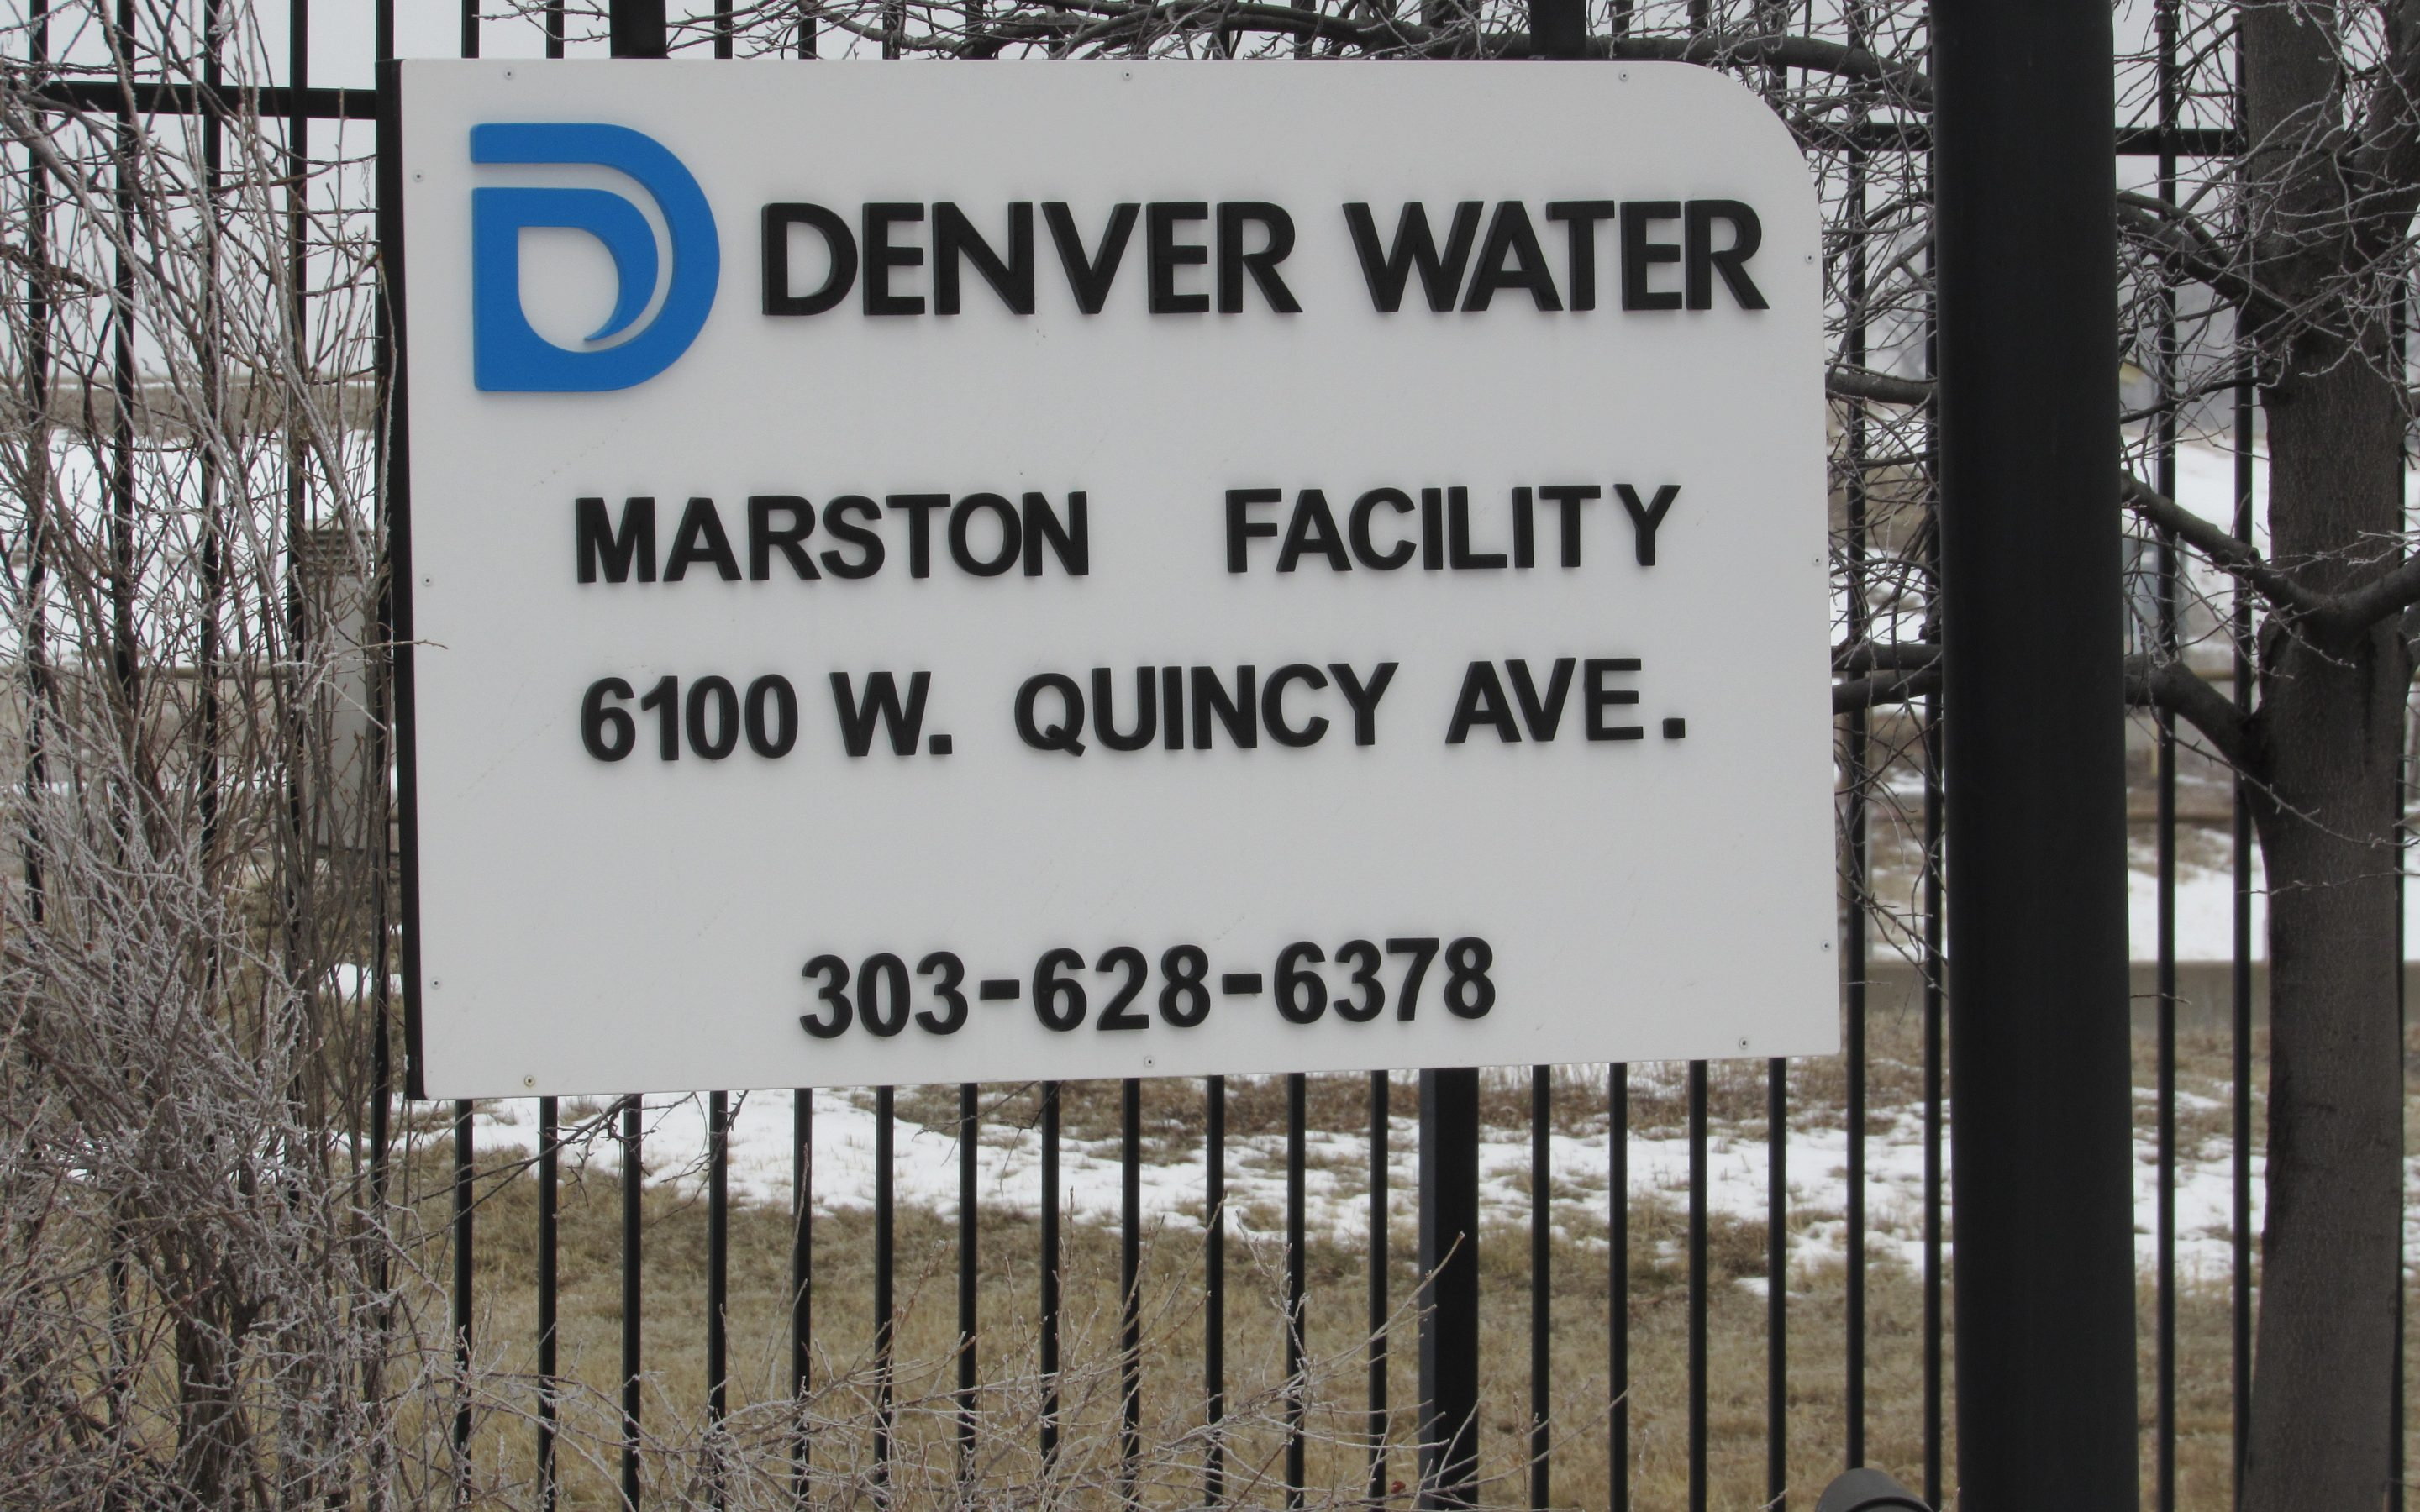 Denver Water is spending $1.2 million to upgrade its Marston water treatment facility, and others, so that they can implement new treatment protocols to reduce lead that enters delivered water through lead service lines and in-home fixtures.